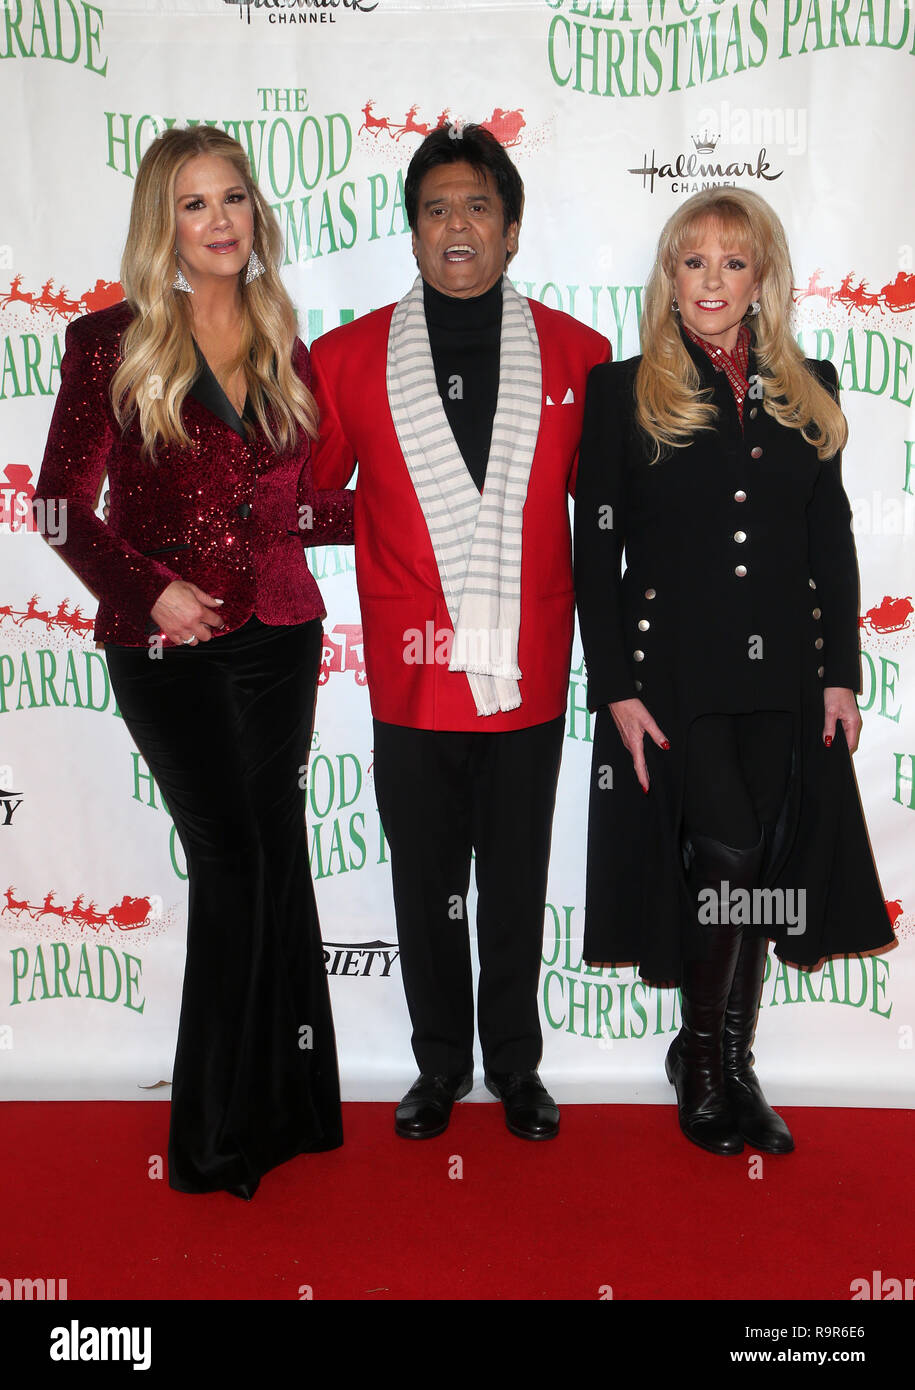 The Christmas Parade Hallmark.87th Annual Hollywood Christmas Parade Featuring Nancy O Dell Erik